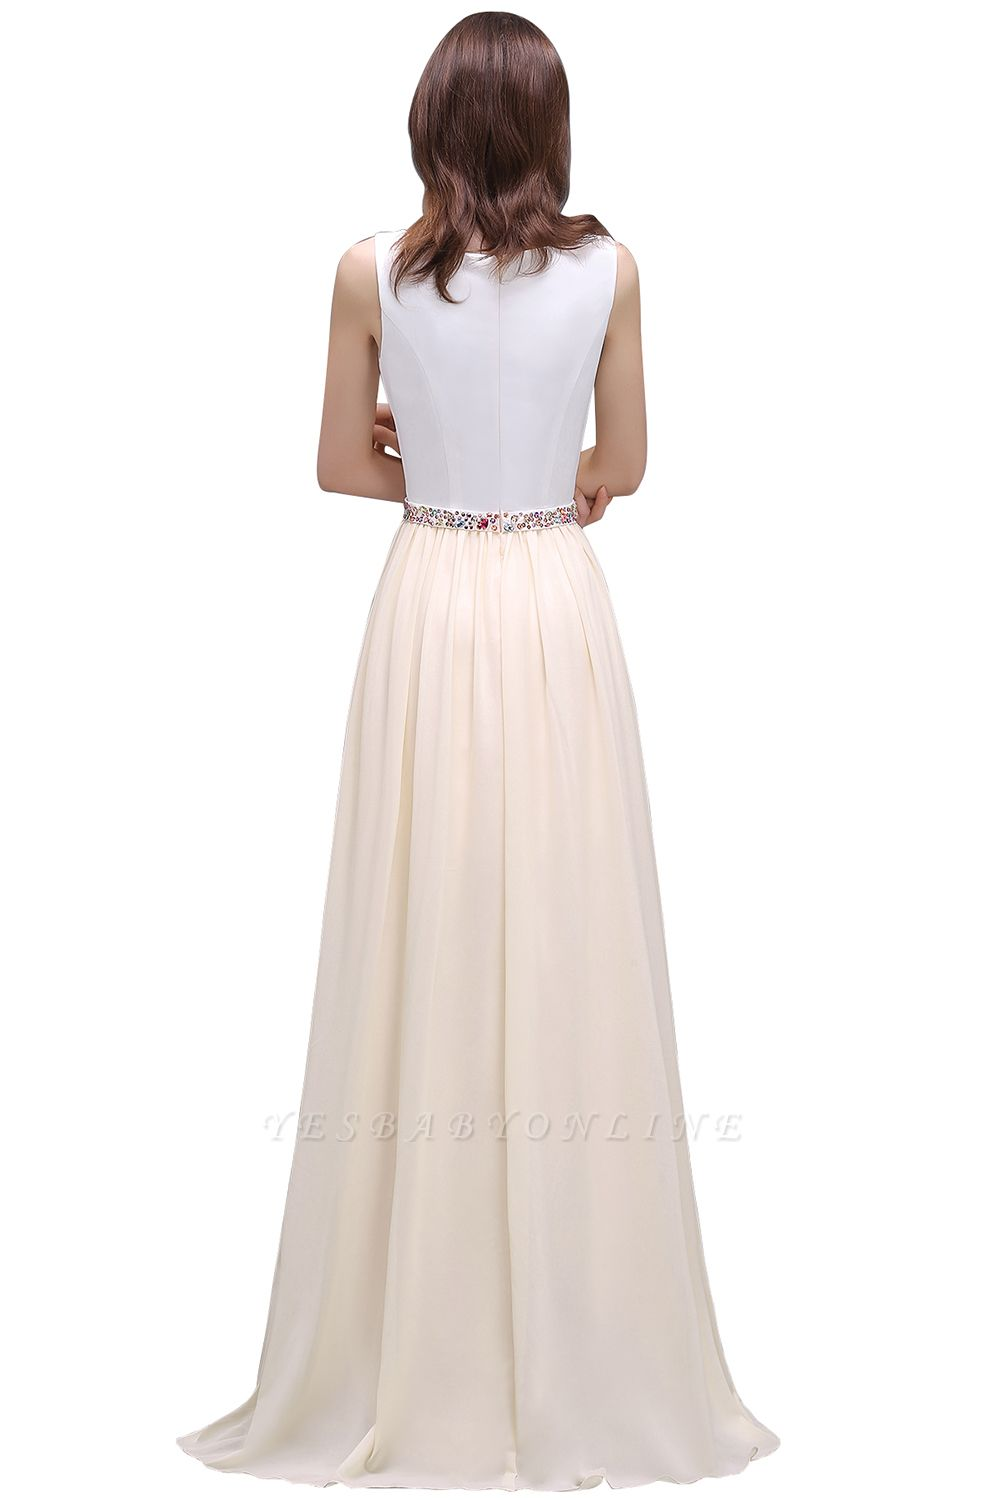 Sheath Jewel White Long Evening Dresses With Beads